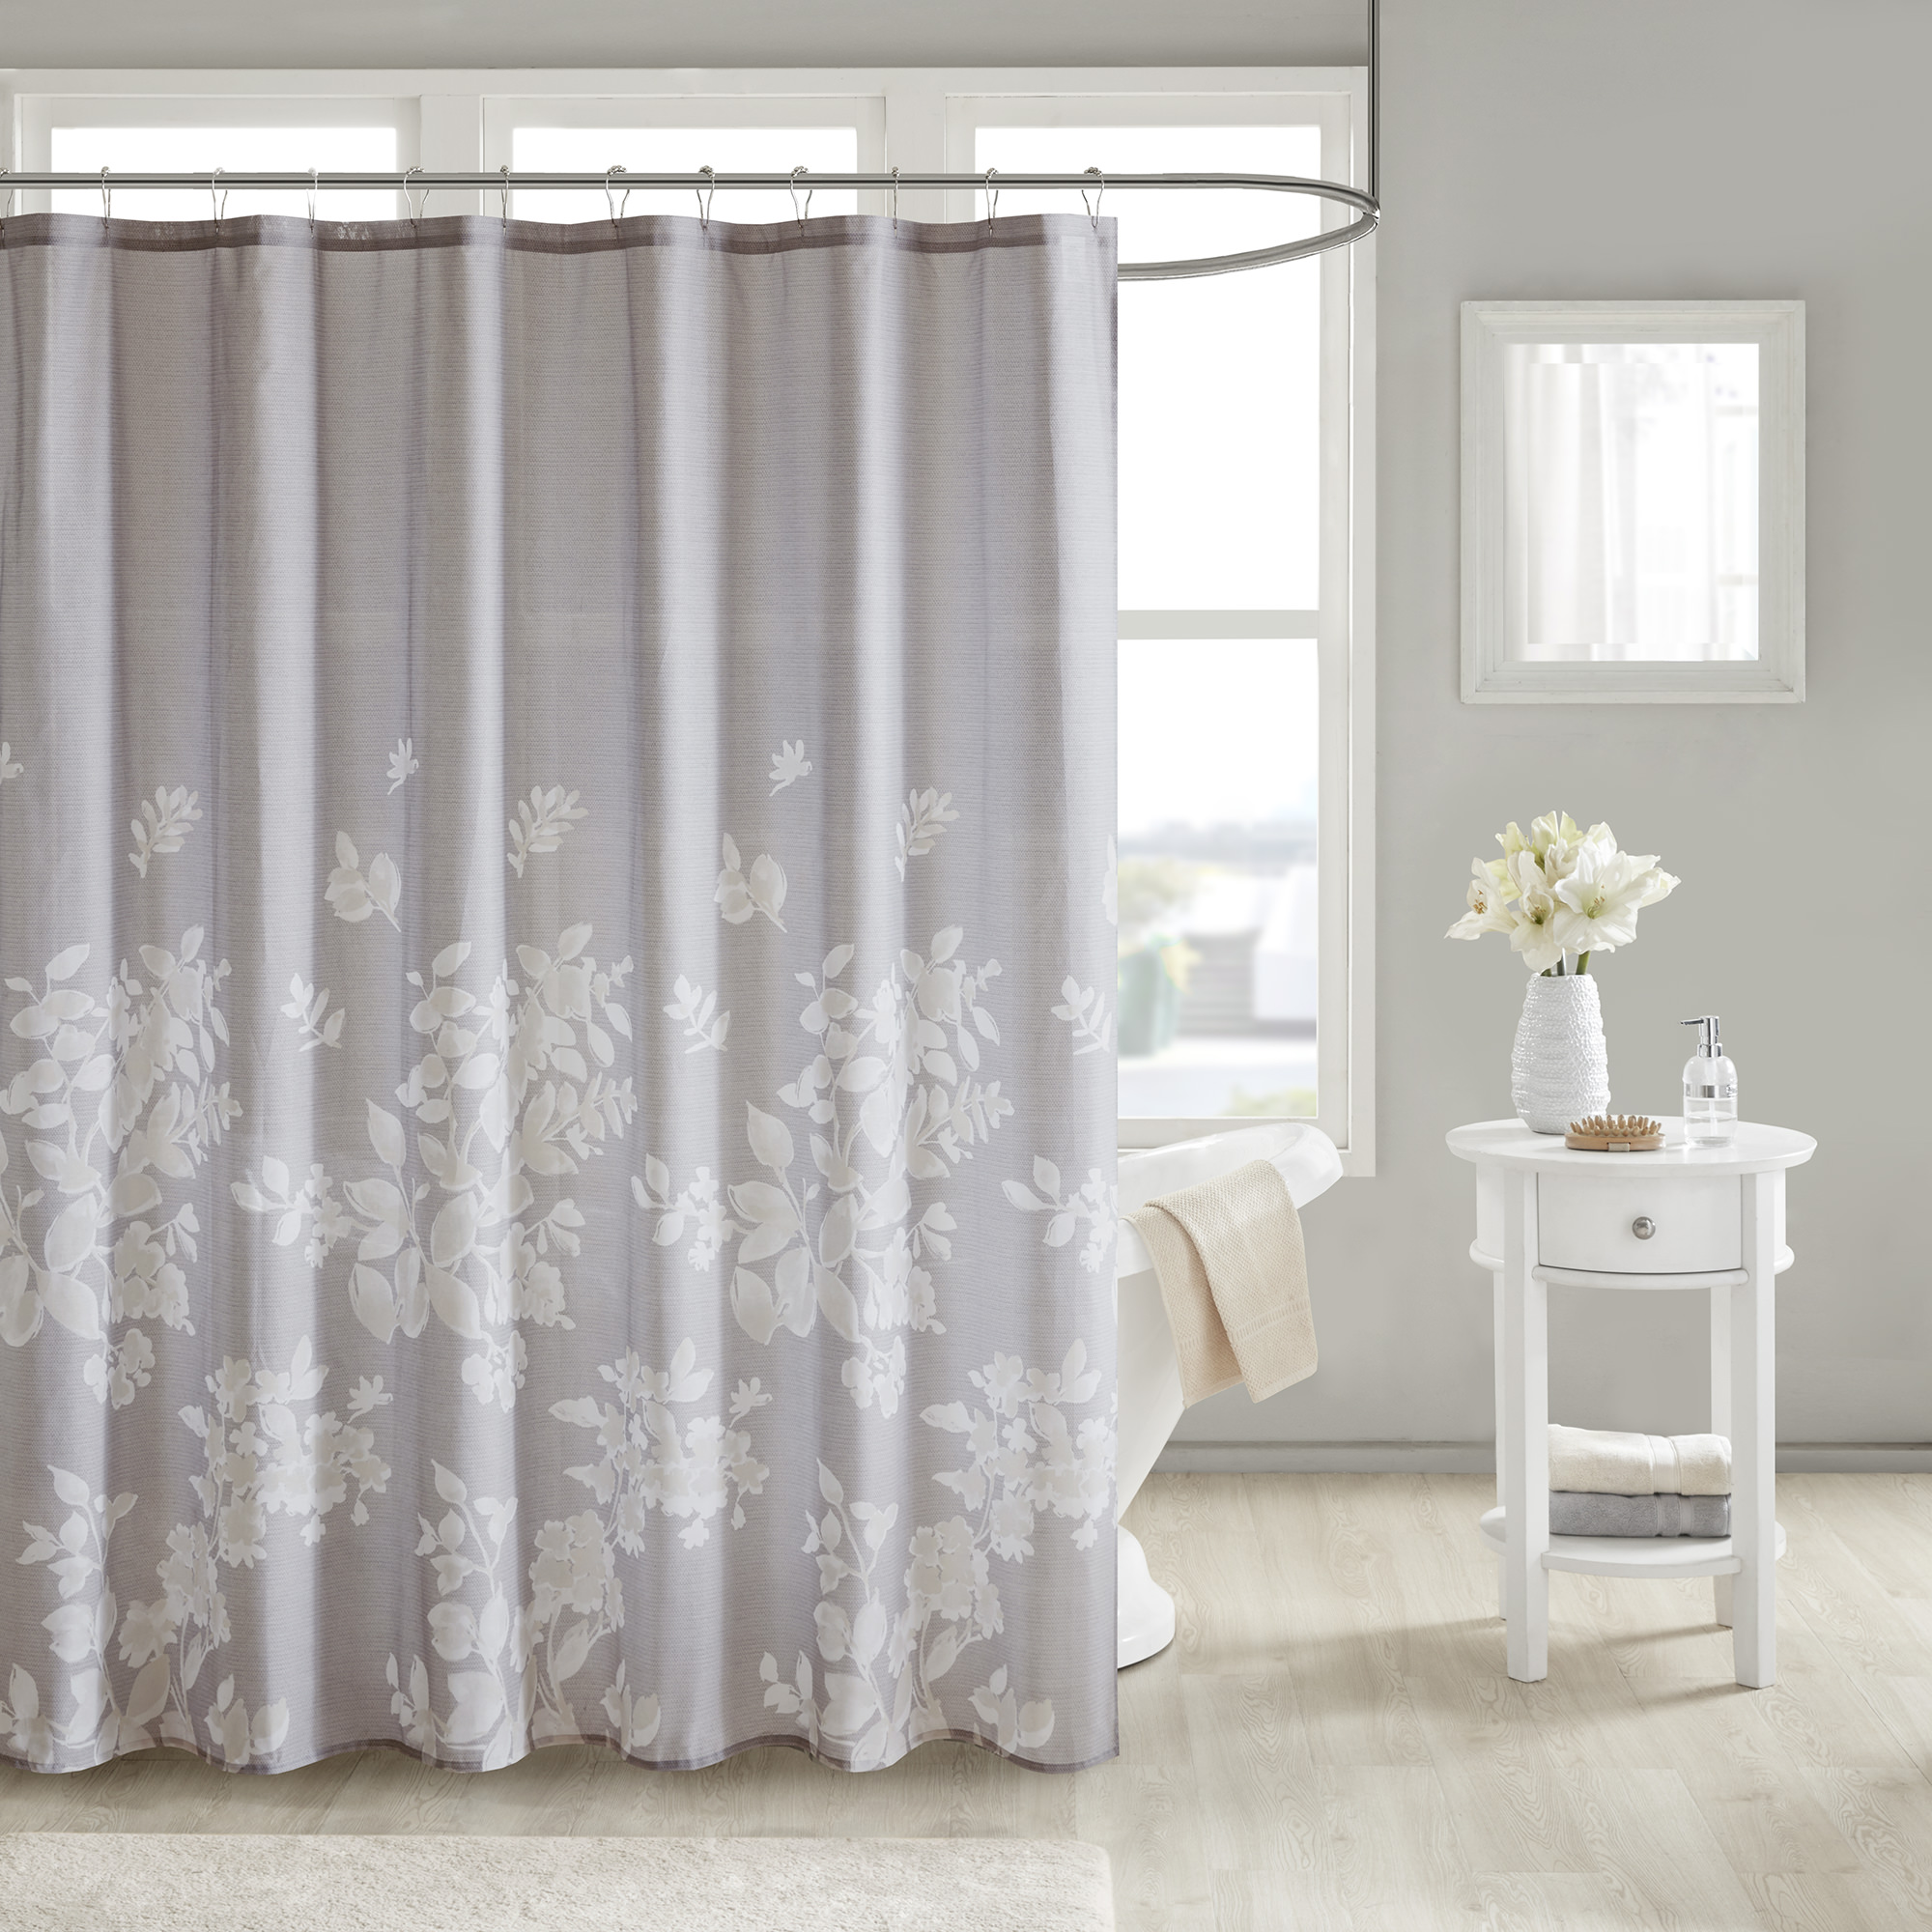 Home Essence Gisella 100% Cotton Printed Shower Curtain